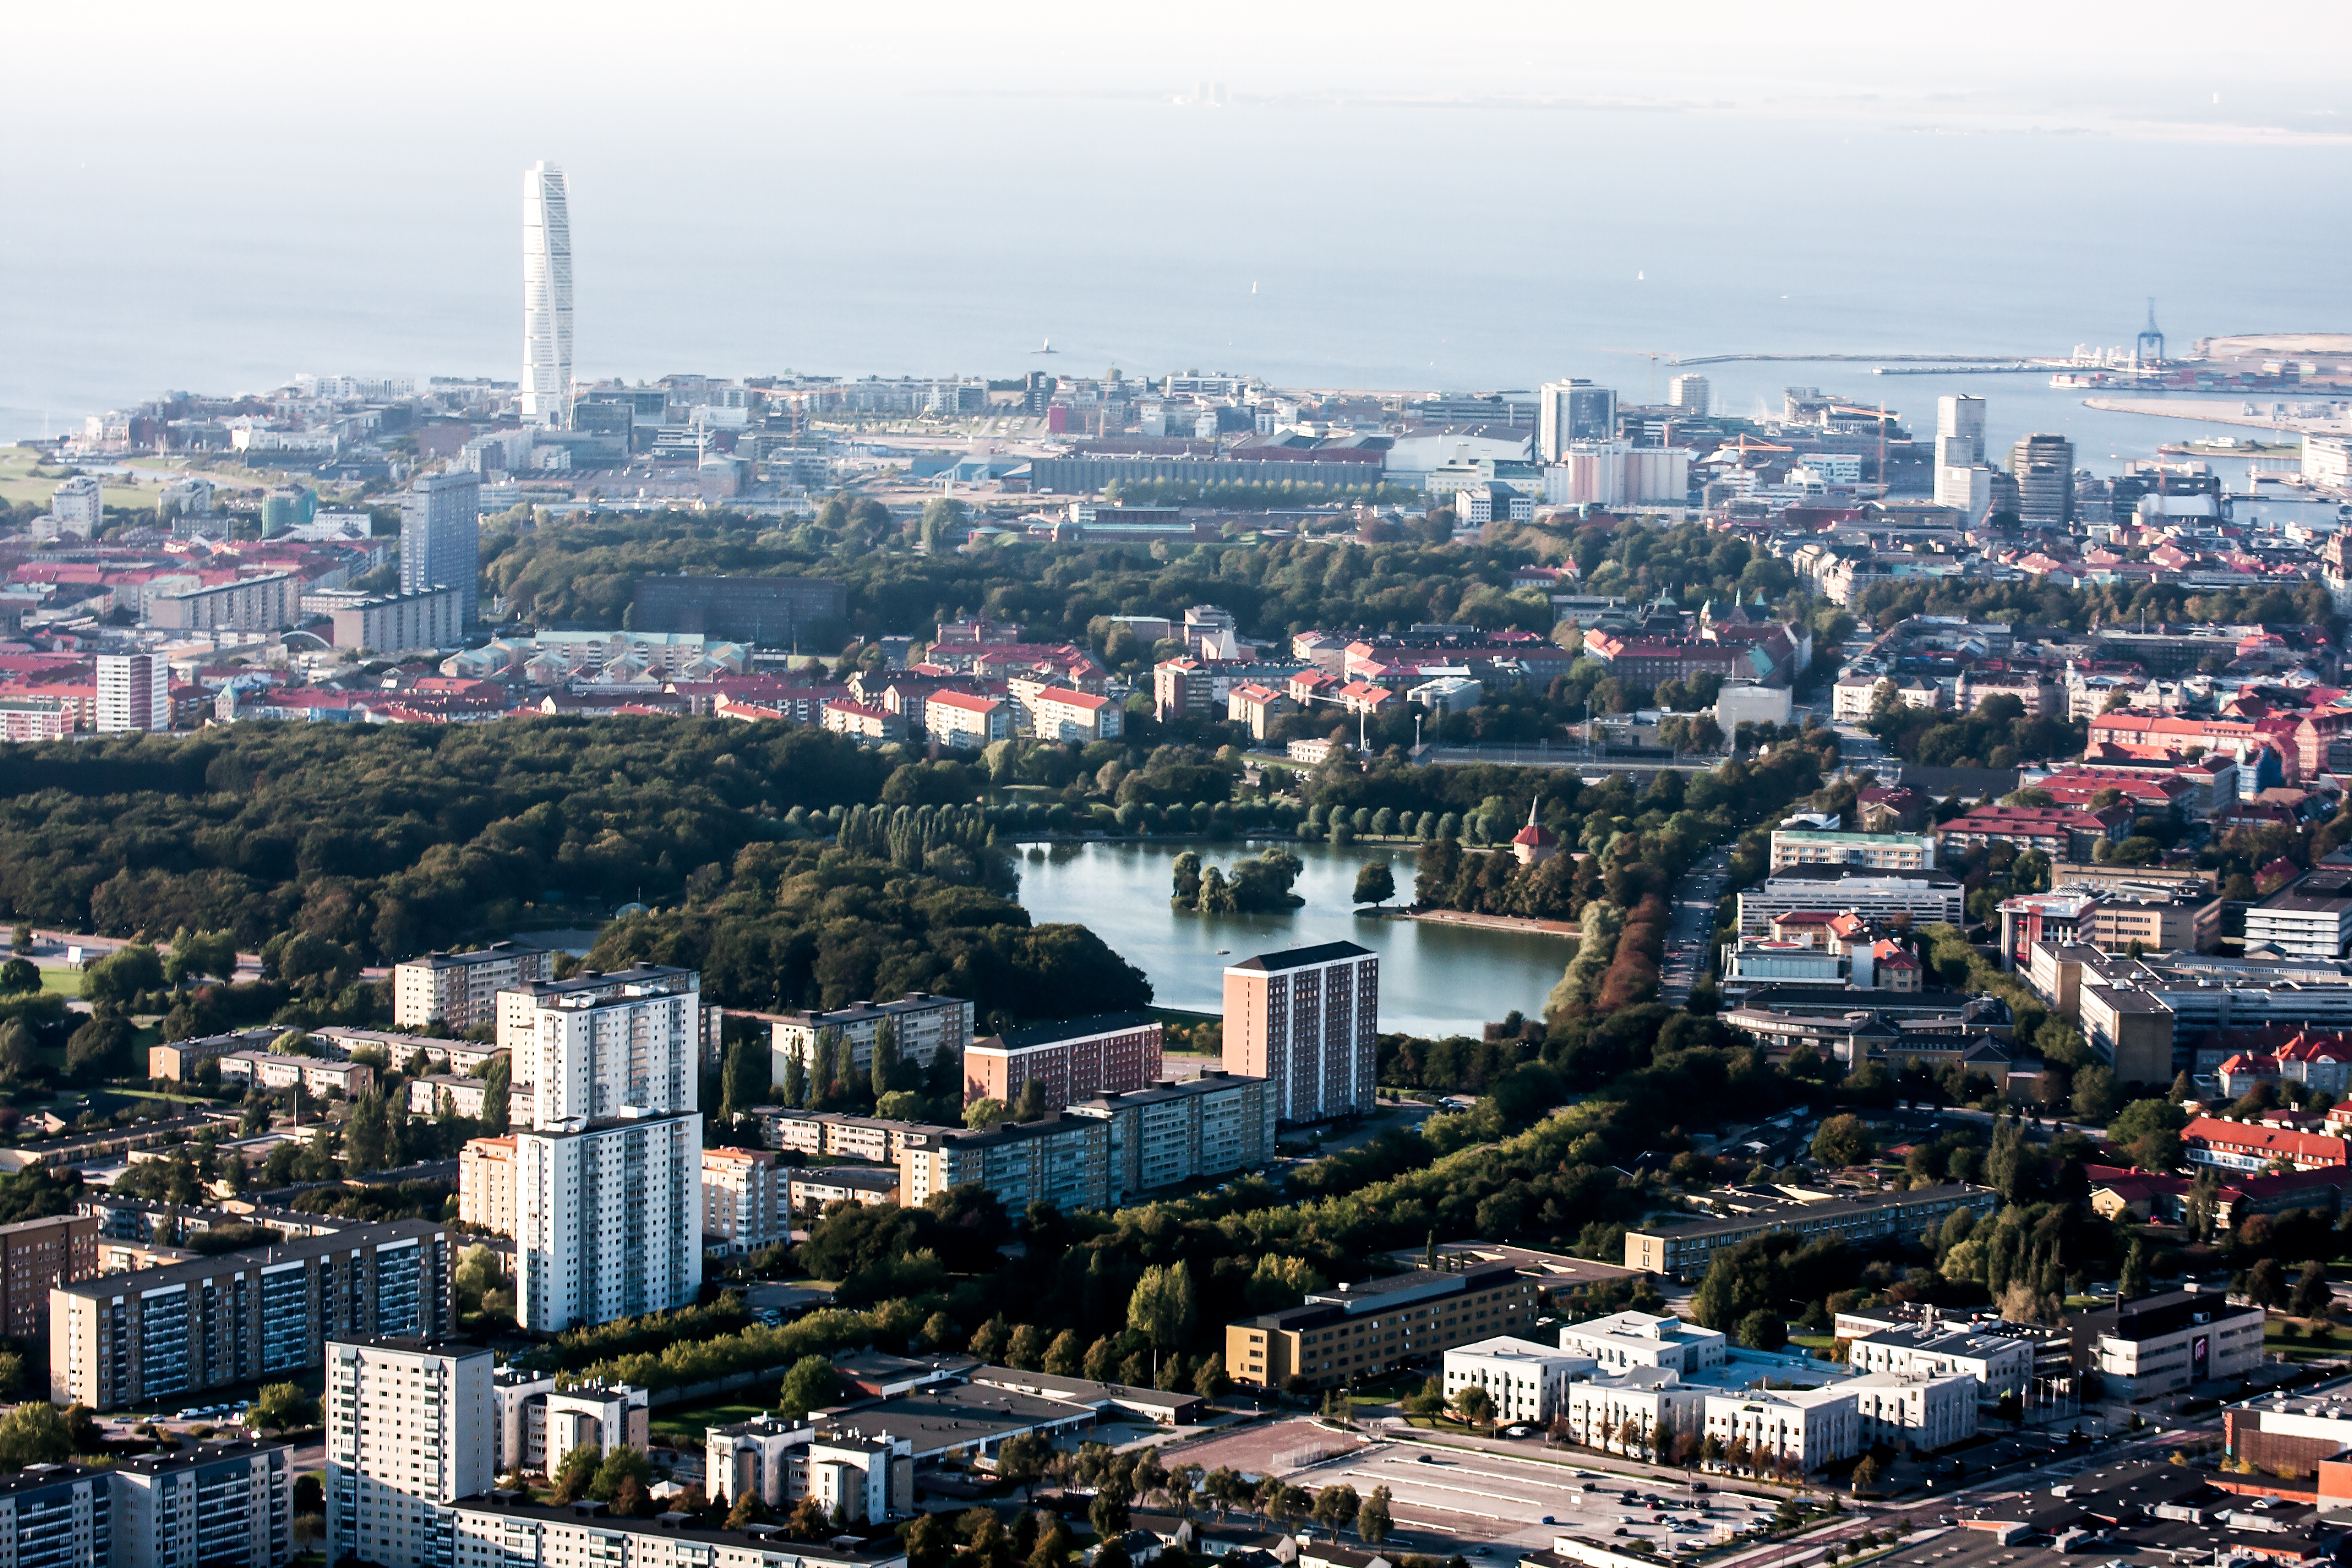 Aerial view of Malmö